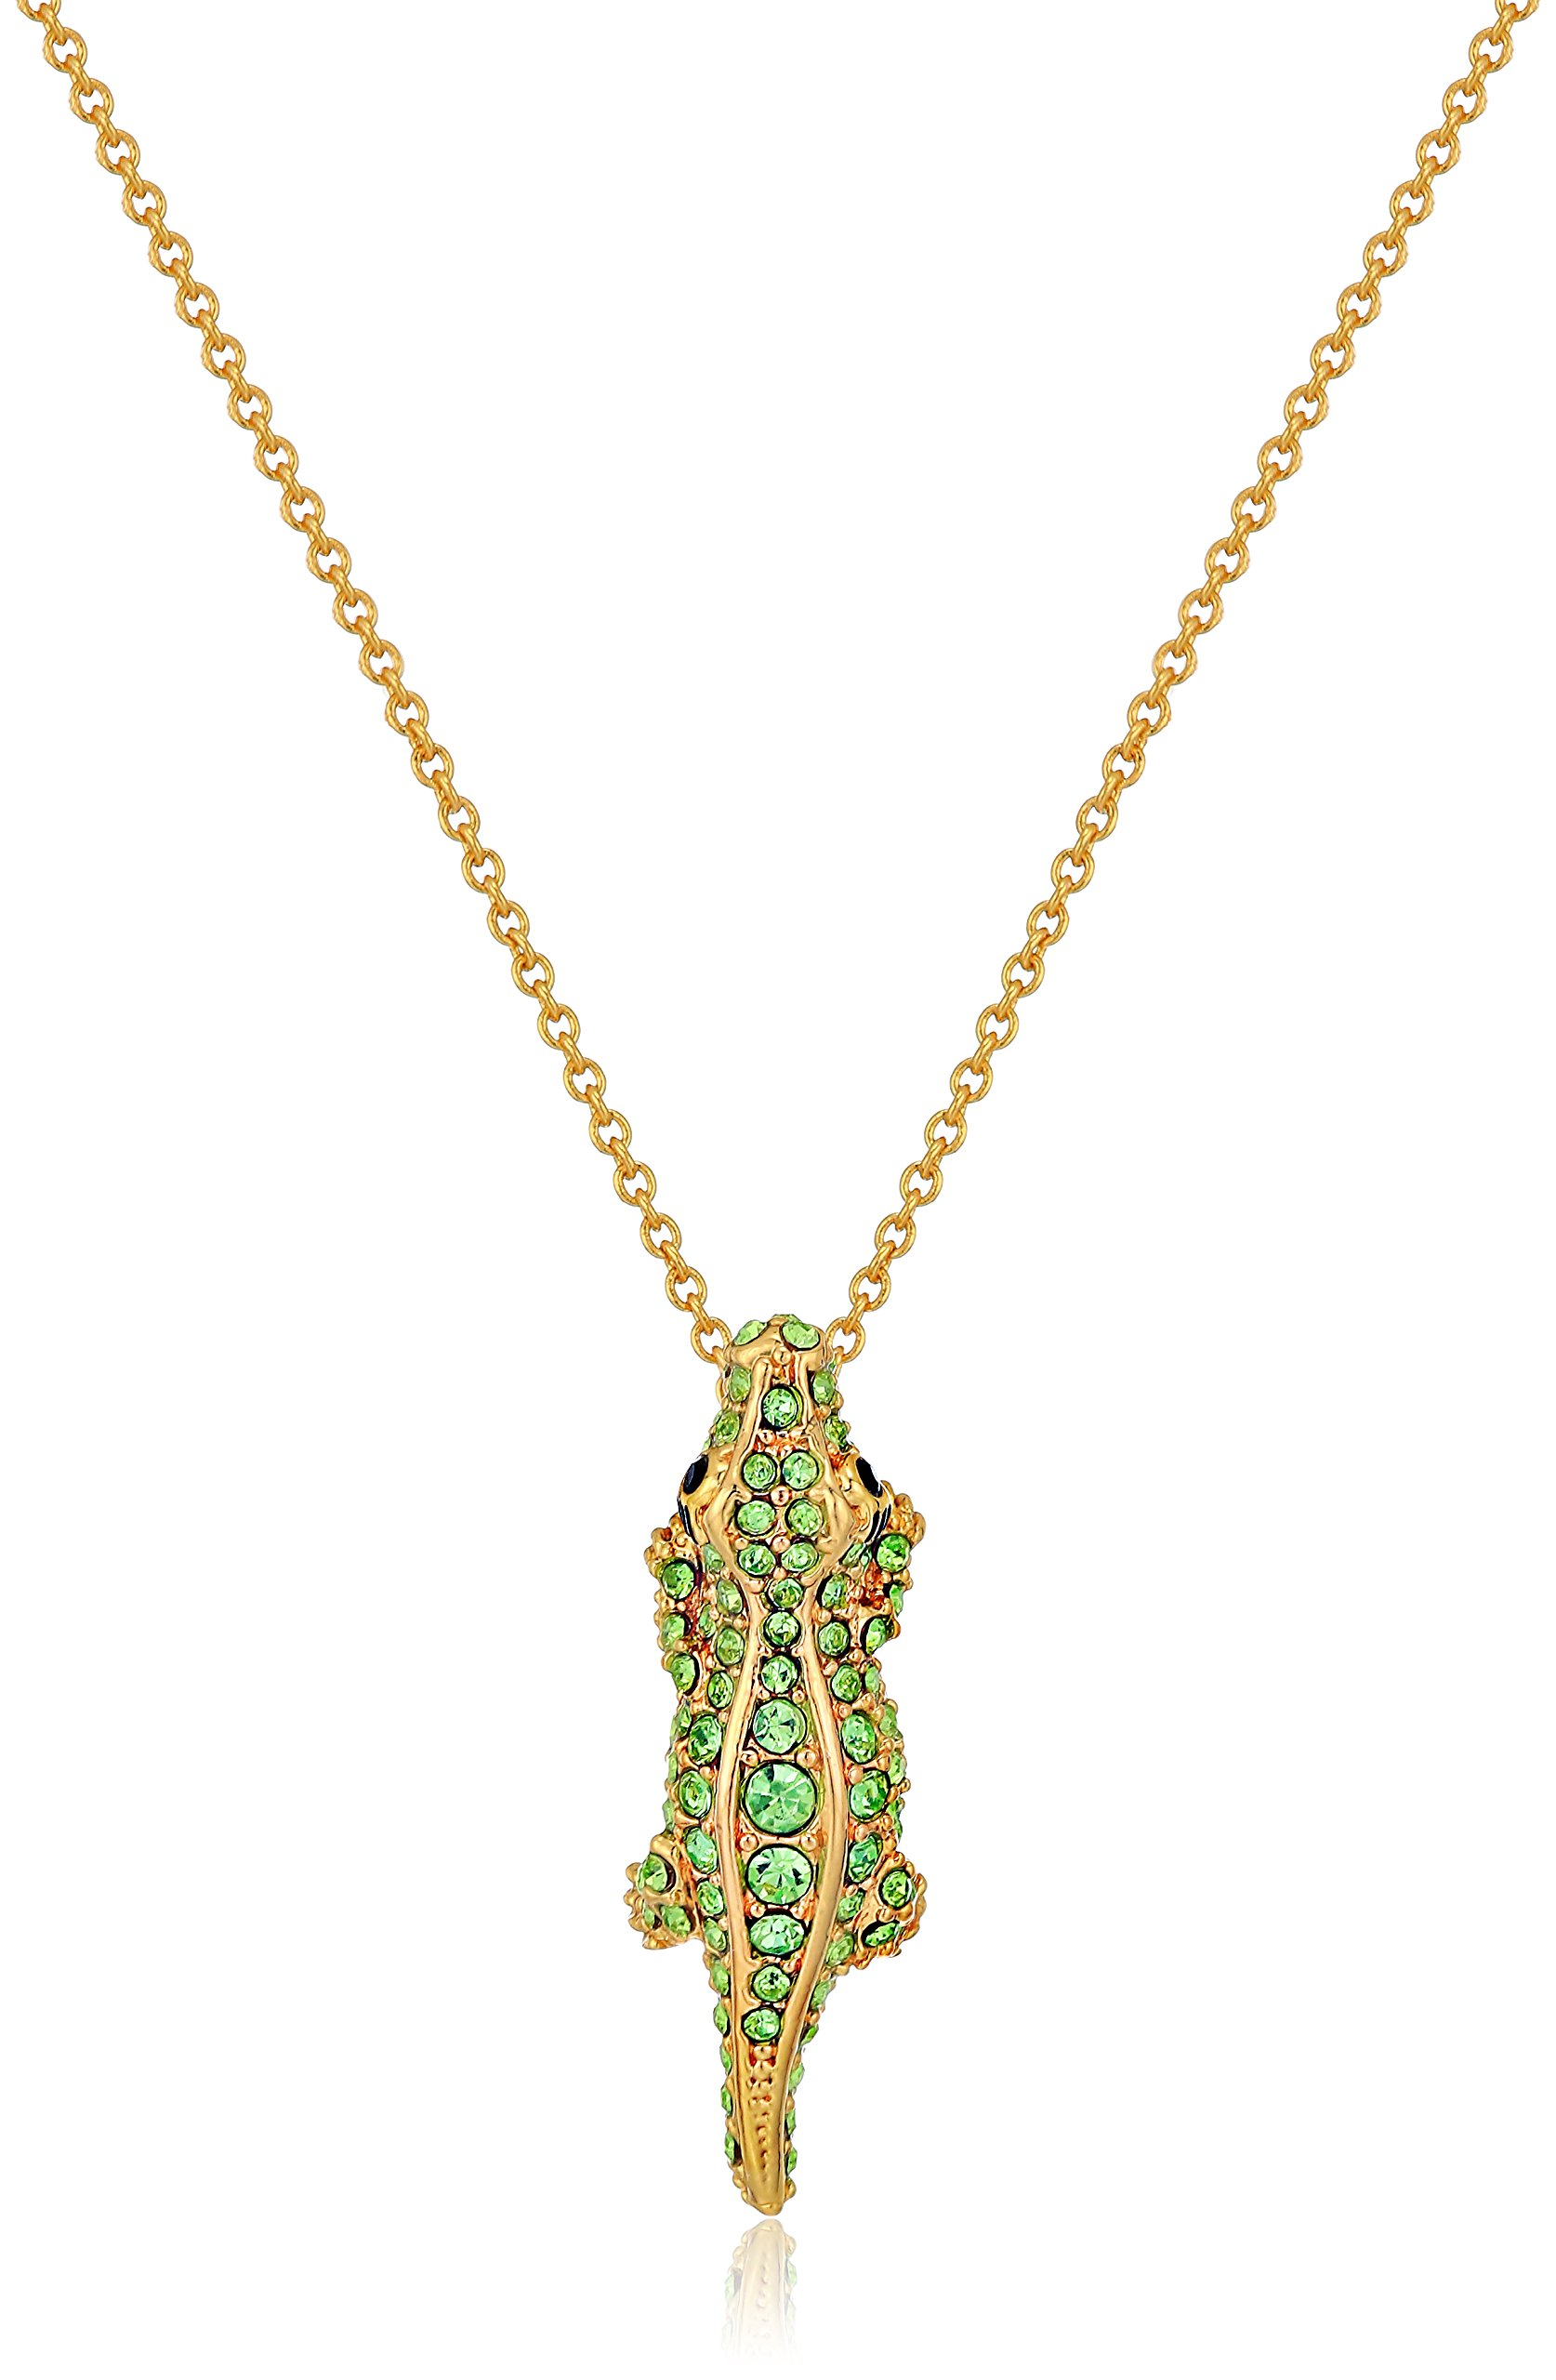 Kate Spade New York Pave Alligator Mini Pendant Swamped Pave Alligator Mini Multi Pendant Necklaces